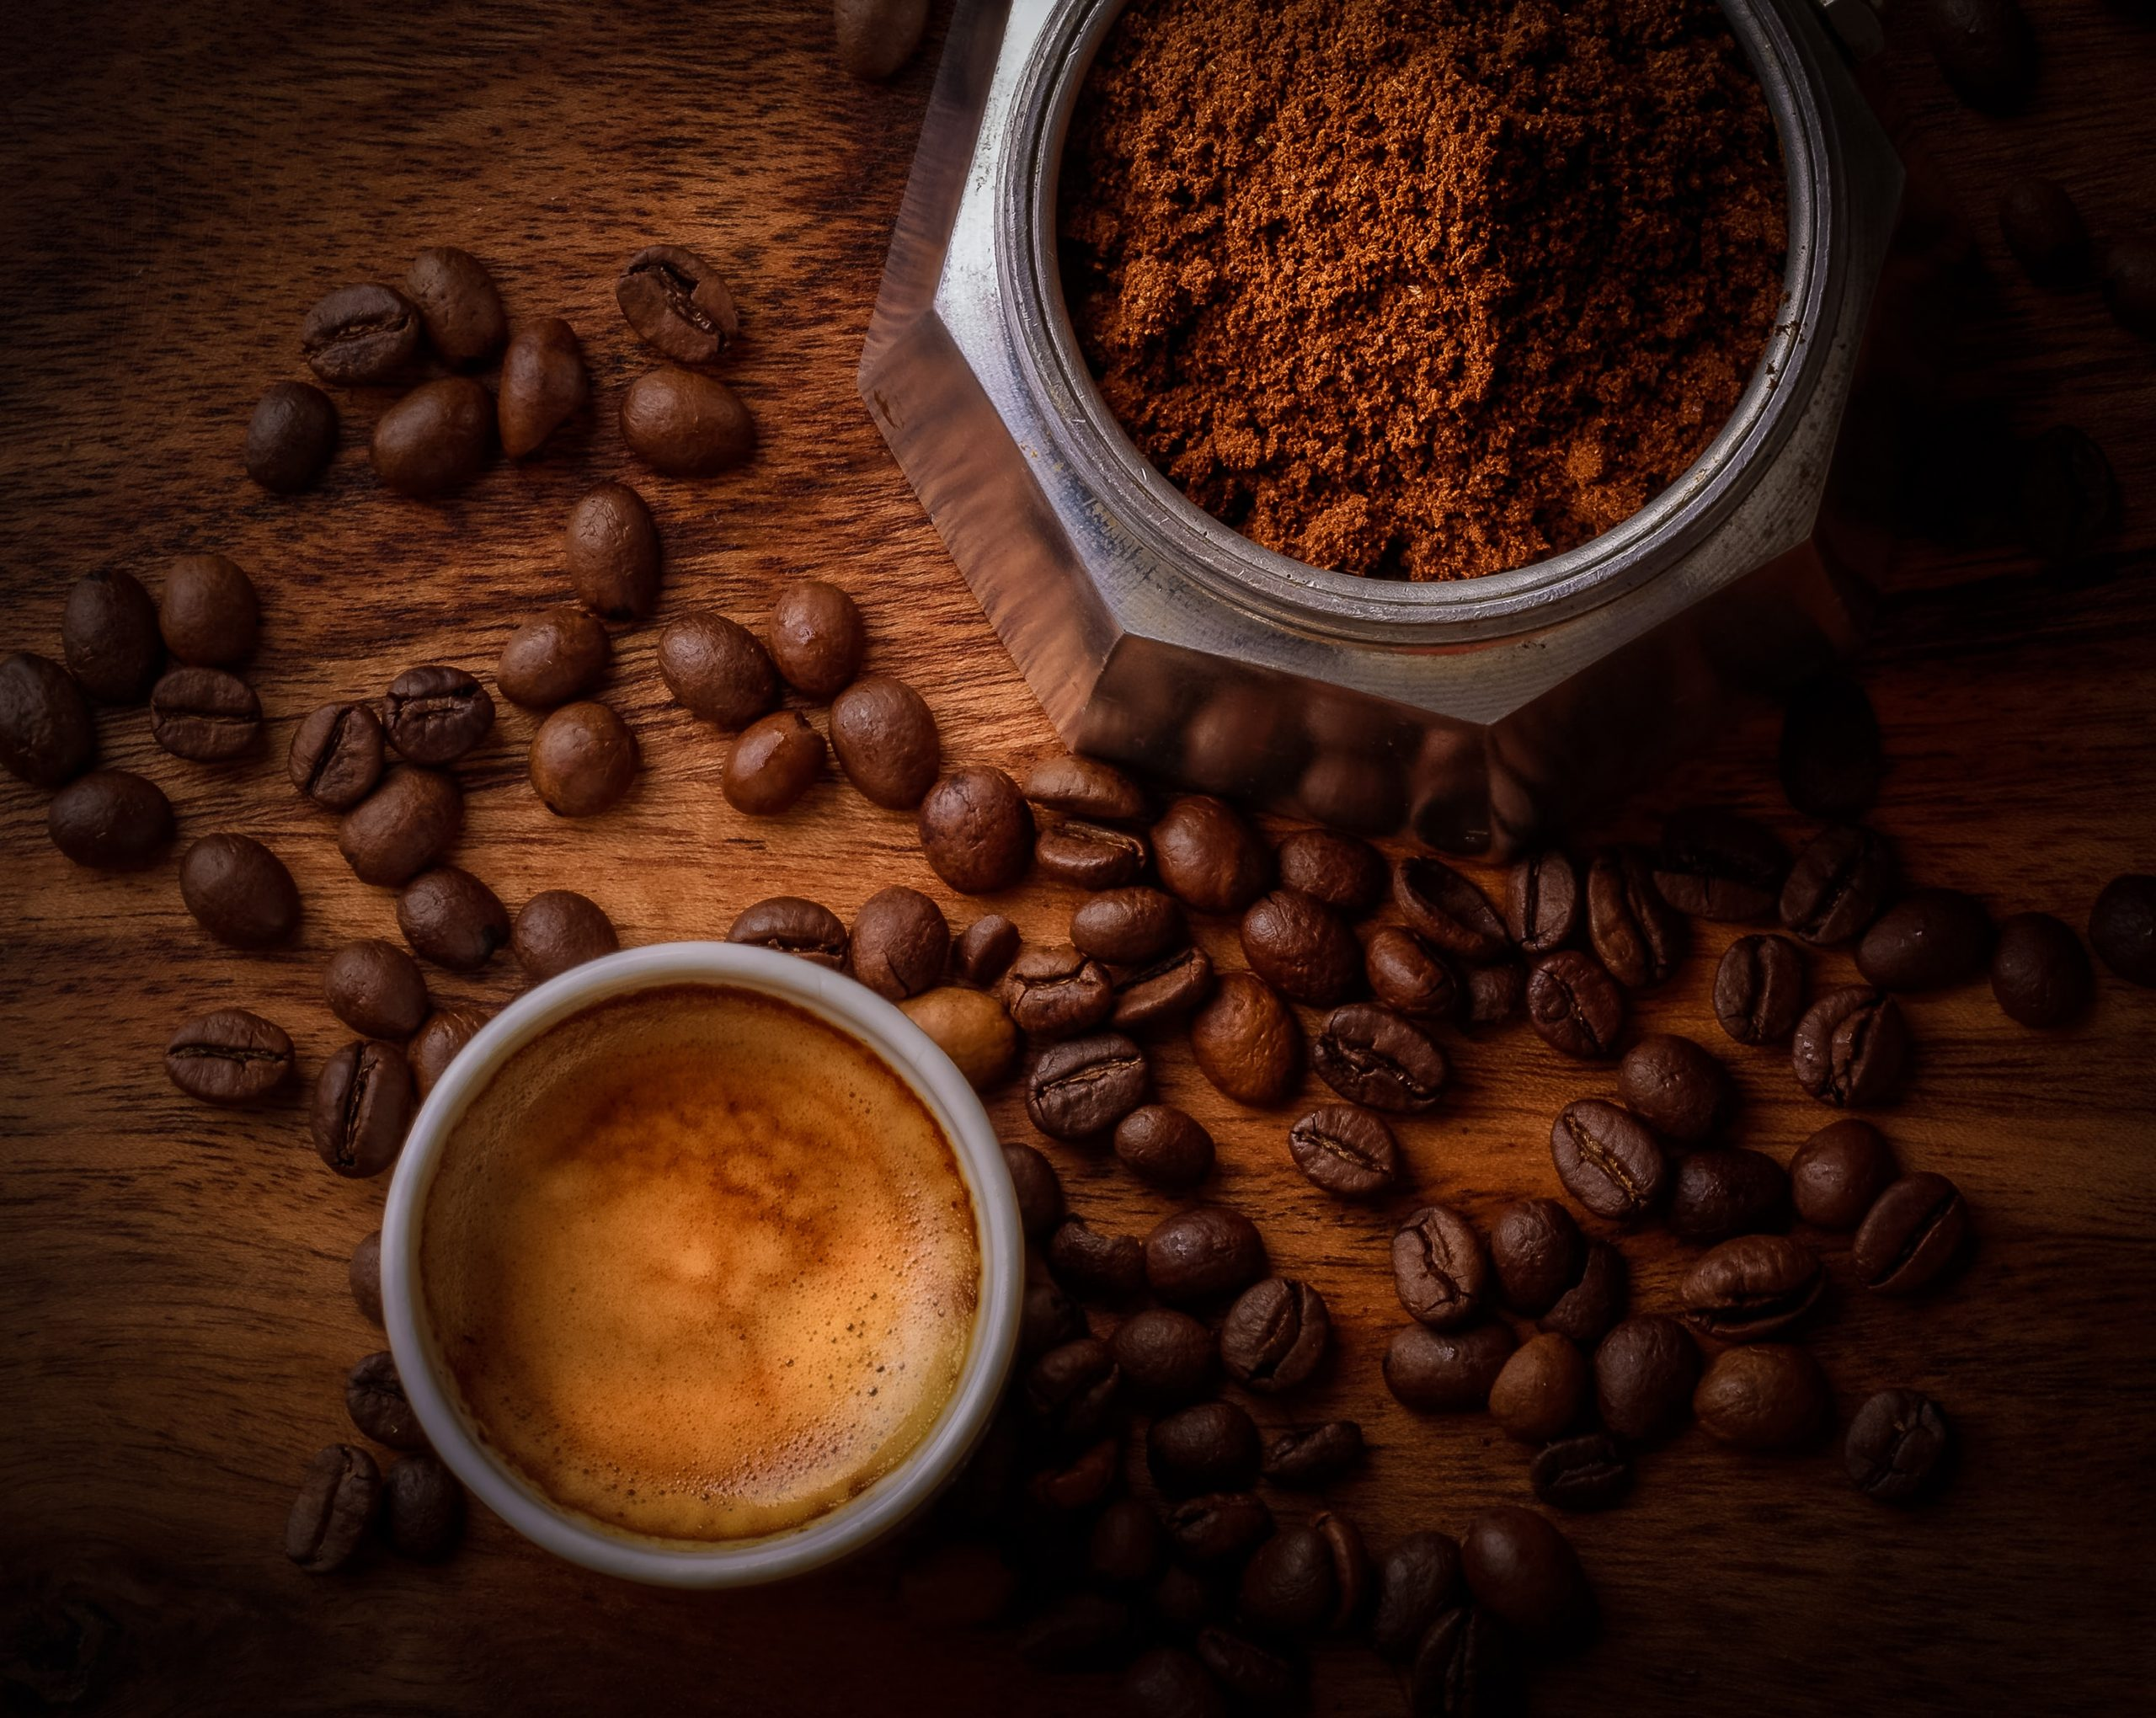 coffee in cup, beans and ground